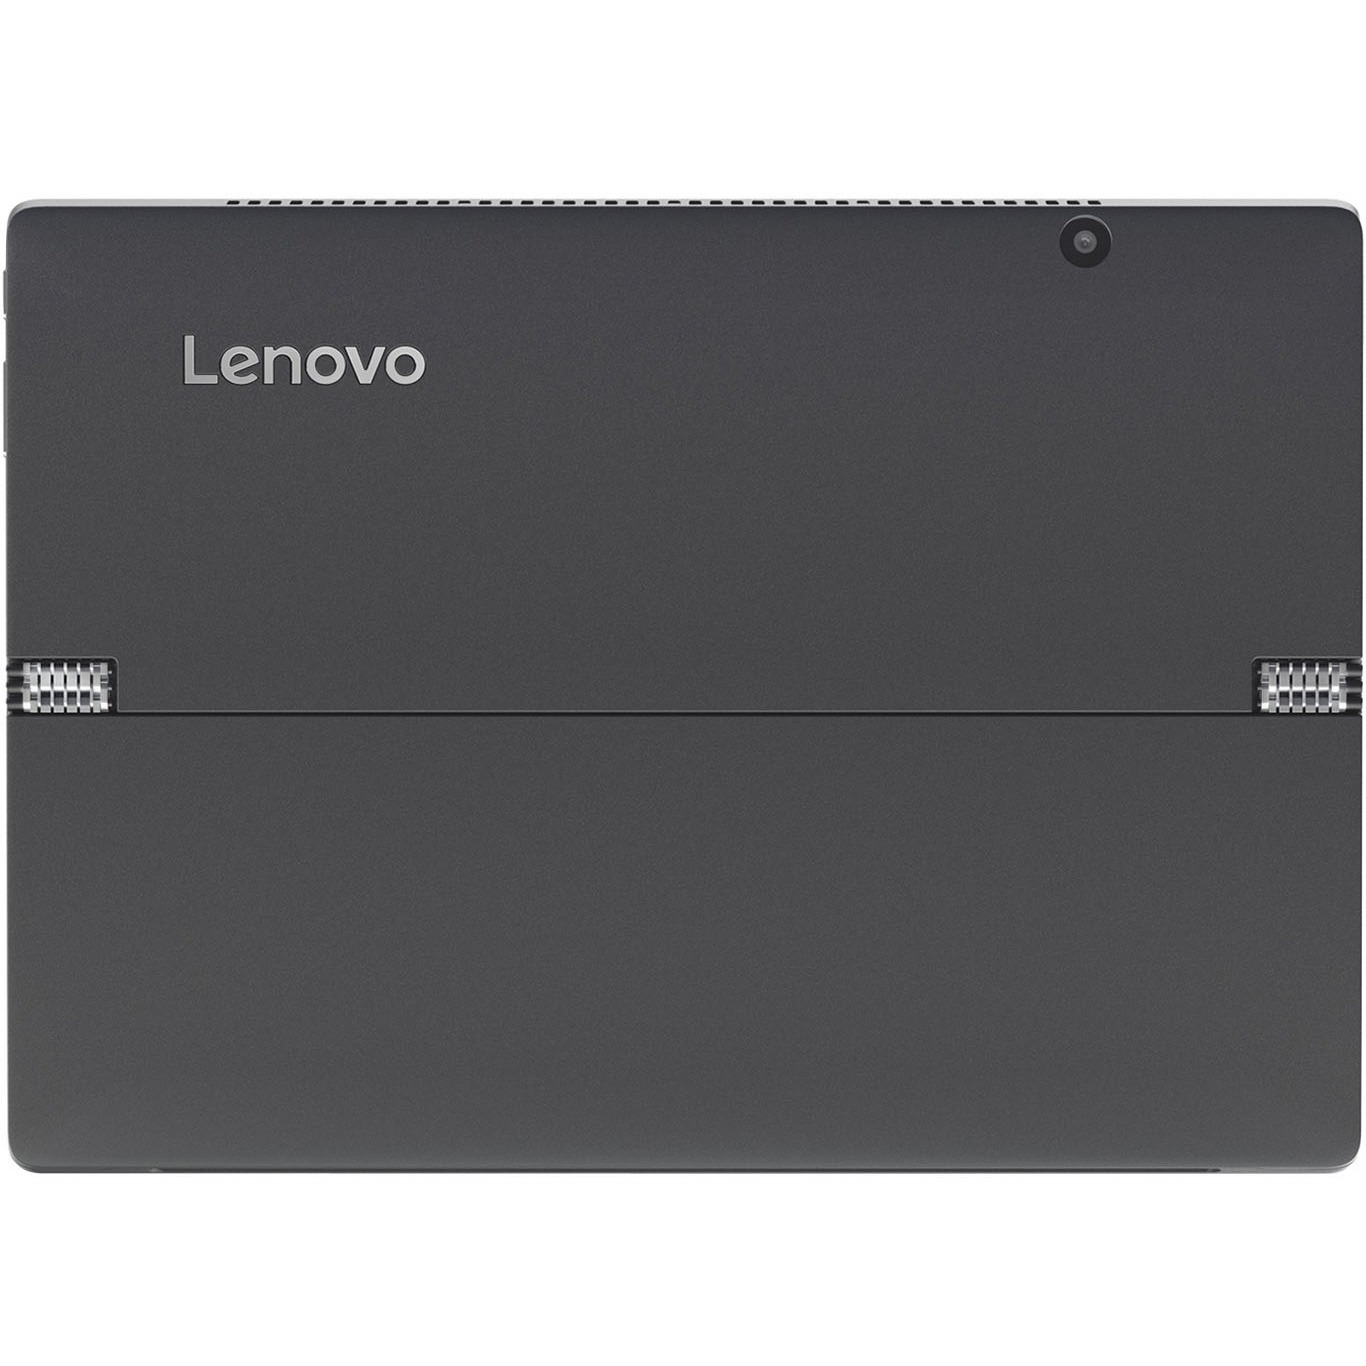 Lenovo IdeaPad Miix 720-12IKB 80VV003UUK 30.5 cm 12inch Touchscreen LCD 2 in 1 Notebook - Intel Core i5 7th Gen i5-7200U Dual-core 2 Core 2.50 GHz - 8 GB DDR4 SDR